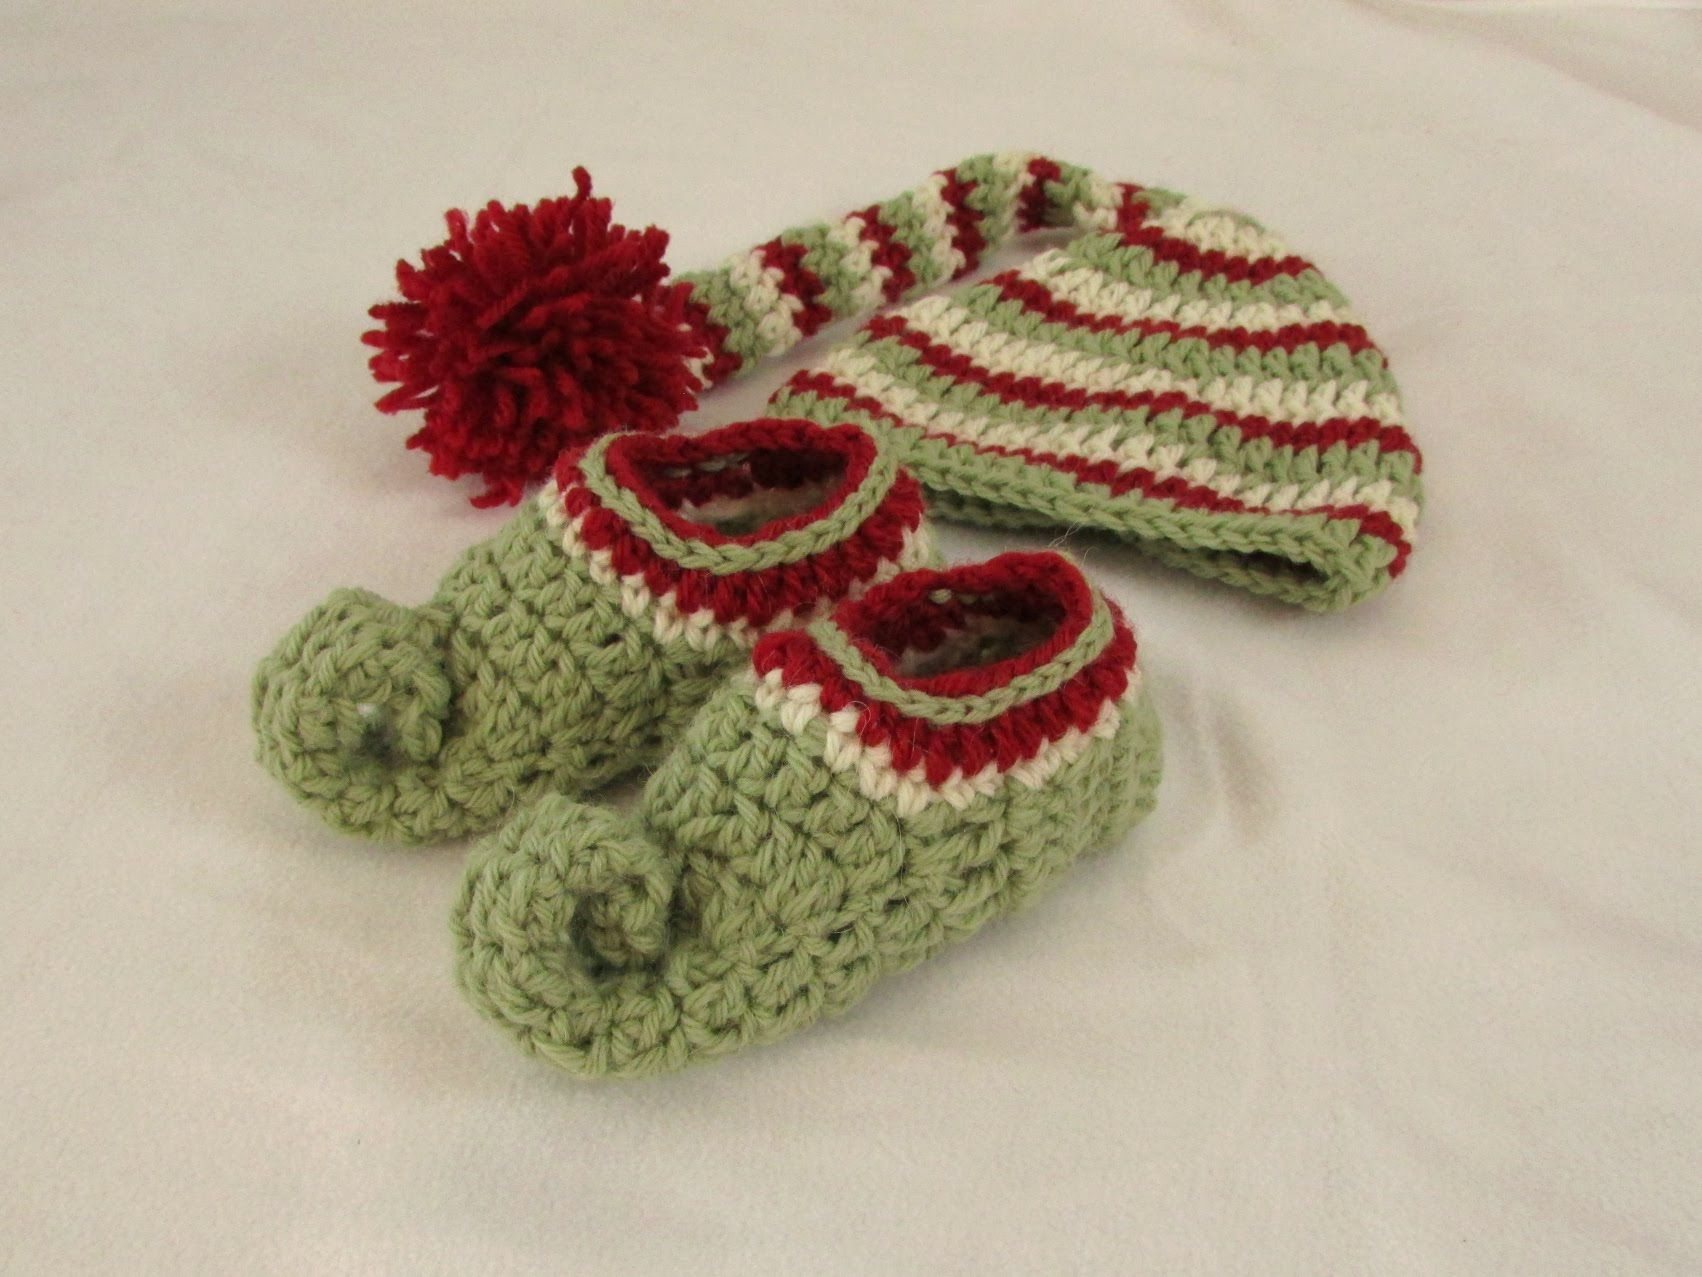 Matching elf slippers httpsyoututgpych5dysu this step by how to crochet childrens elf slippers boots shoes crochet christmas elf set part 2 bankloansurffo Image collections